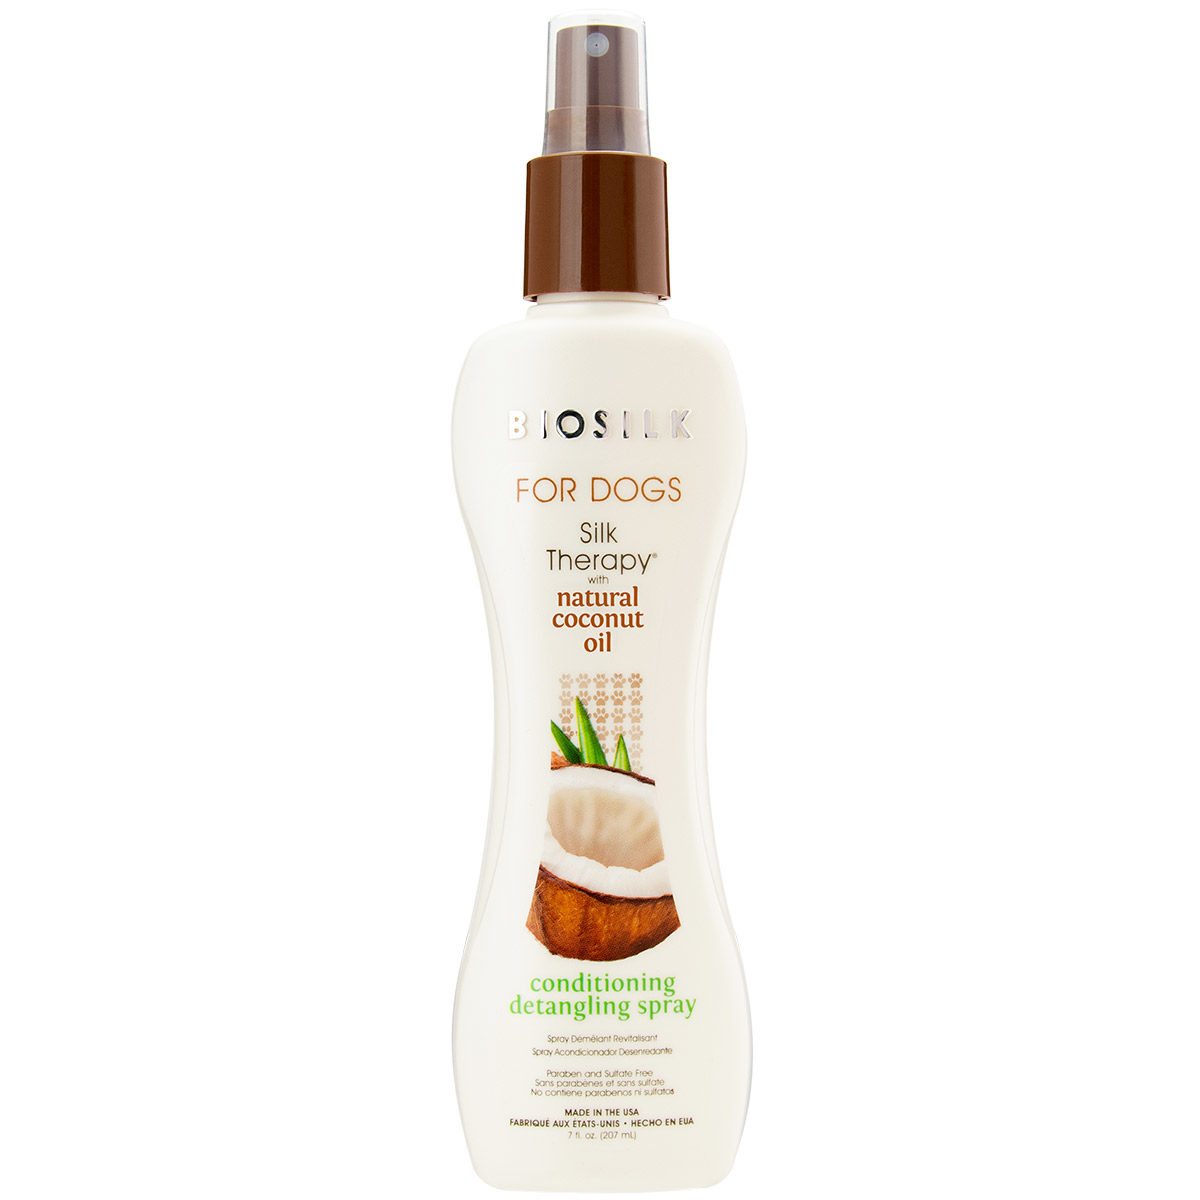 Biosilk-for-Dogs-Silk-Therapy-Conditioning-Detangling-Spray-with-Organic-Coconut-Oil